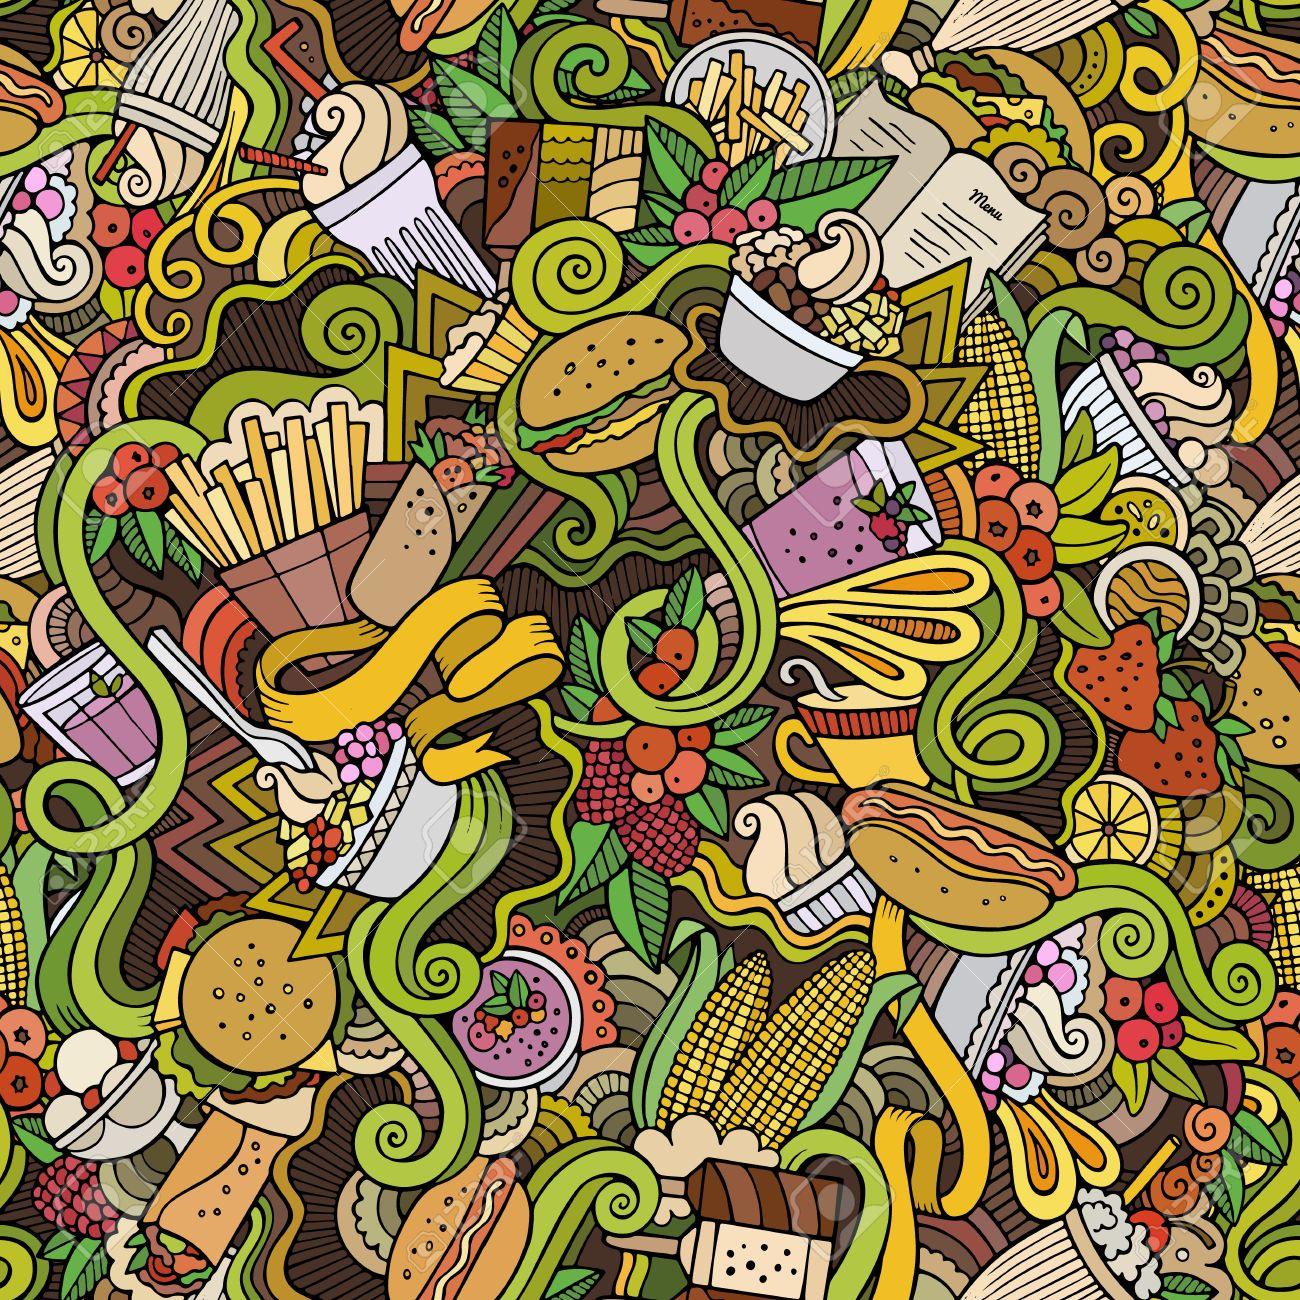 Cartoon hand-drawn Doodles on the subject of fast food and sweets seamless pattern - 43496768